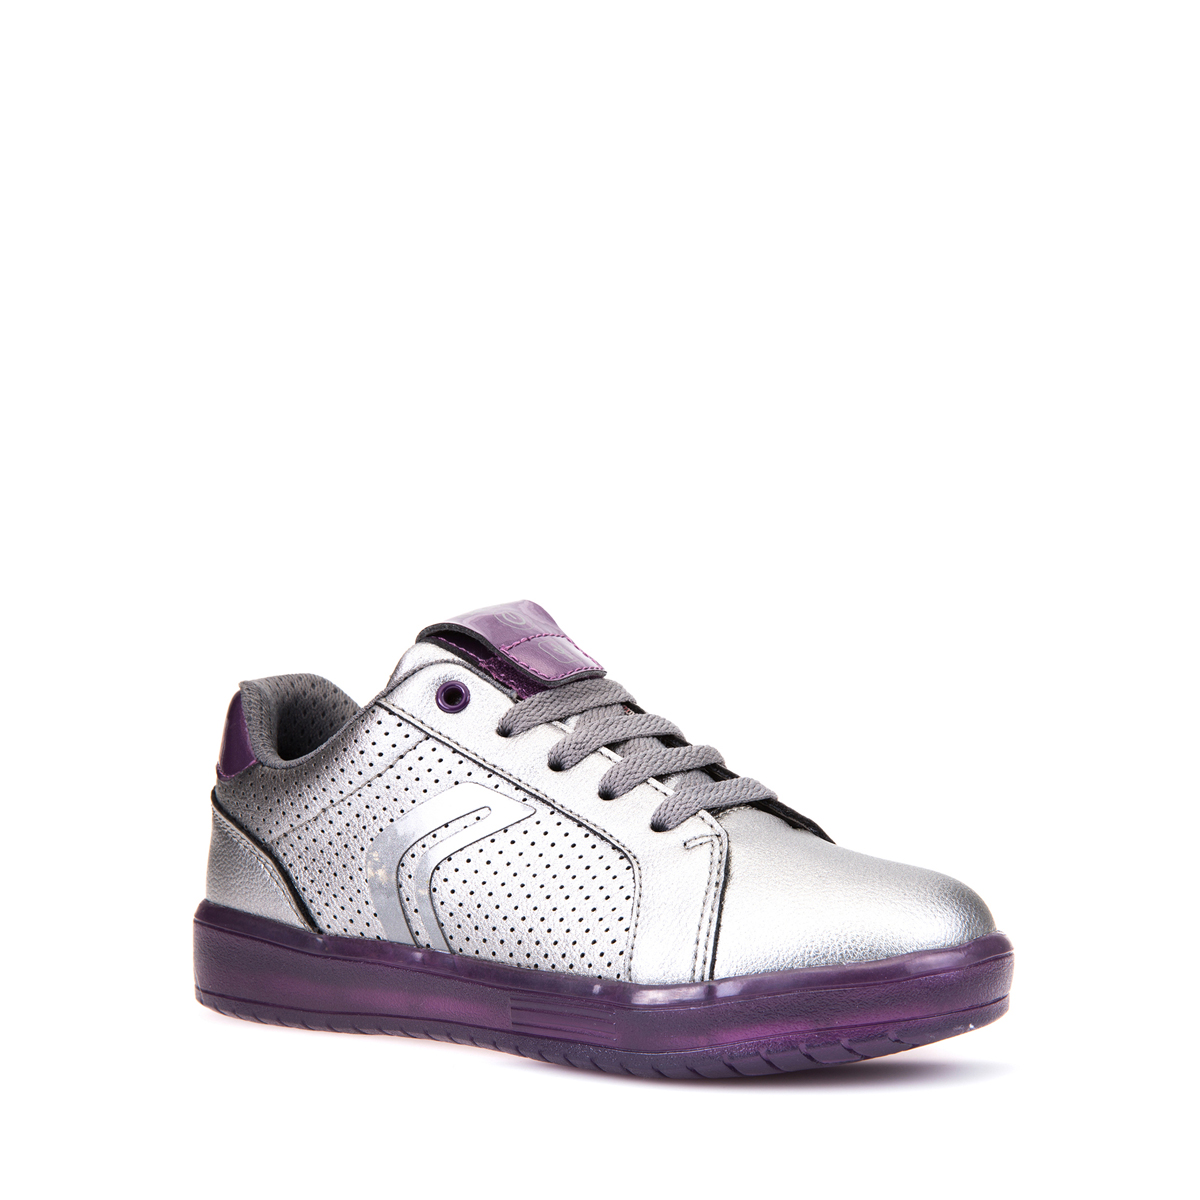 6cf40961537c4 Details about Geox Respira Jr kommodor Girl Sneakers Trainers Low Shoes LED  BLINKER j744h4